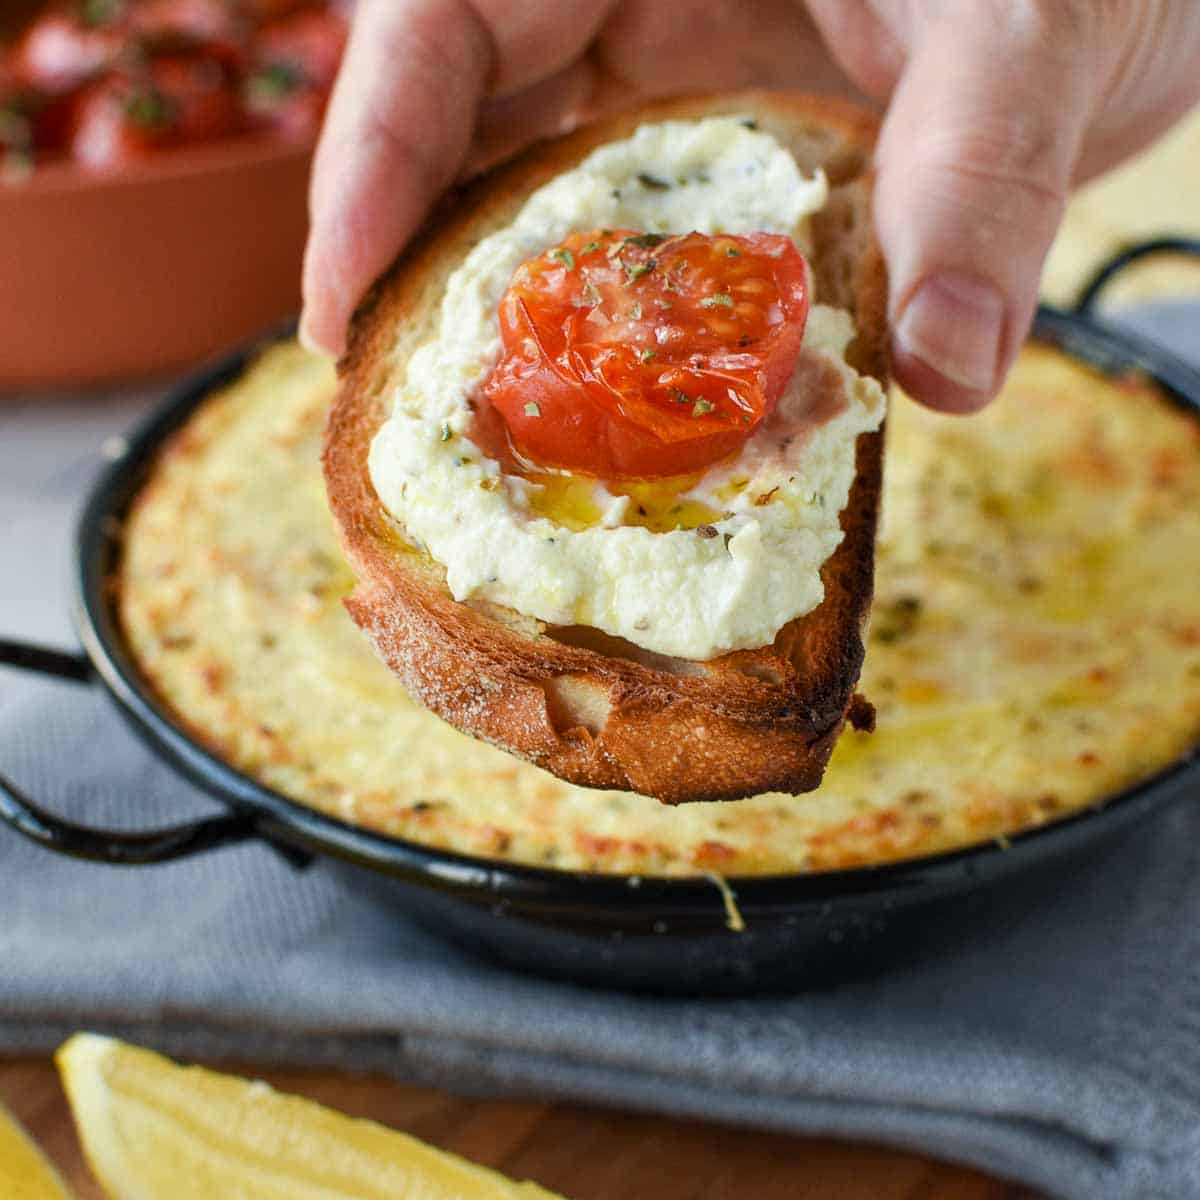 slice of toasted bread spread with baked ricotta and topped with half a slice of roasted cherry tomato